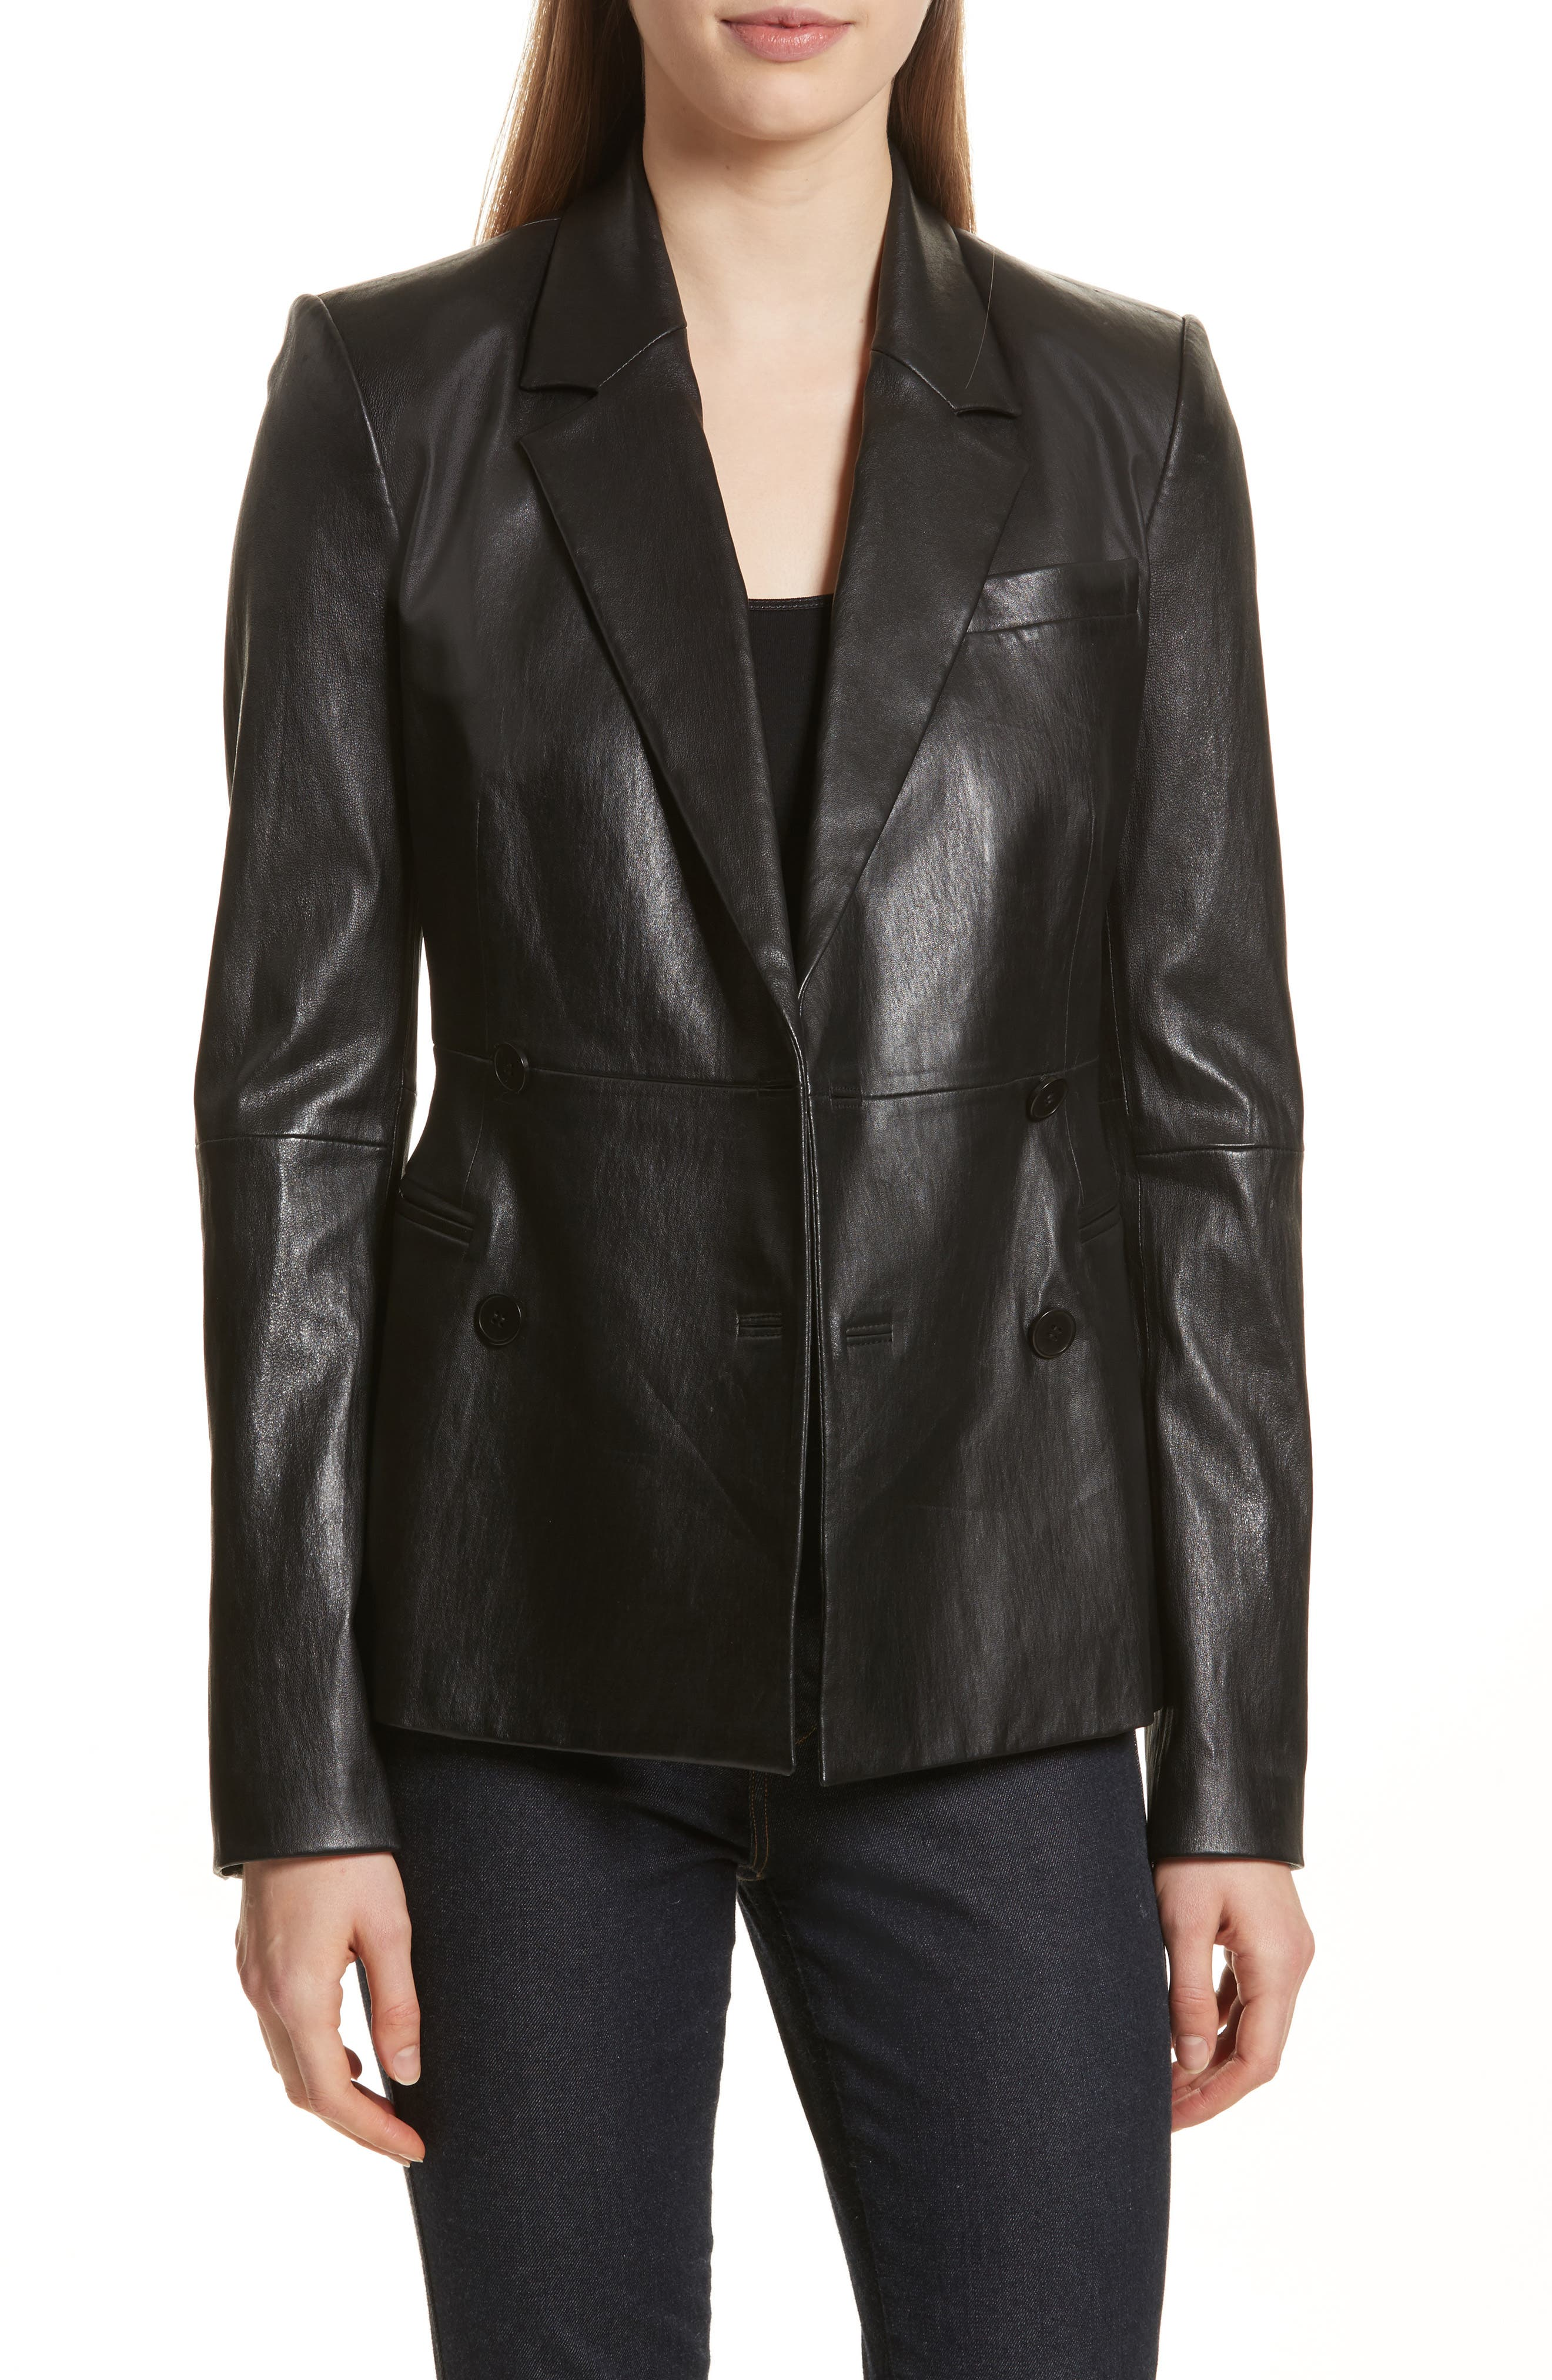 Bristol Leather Blazer,                         Main,                         color, Black